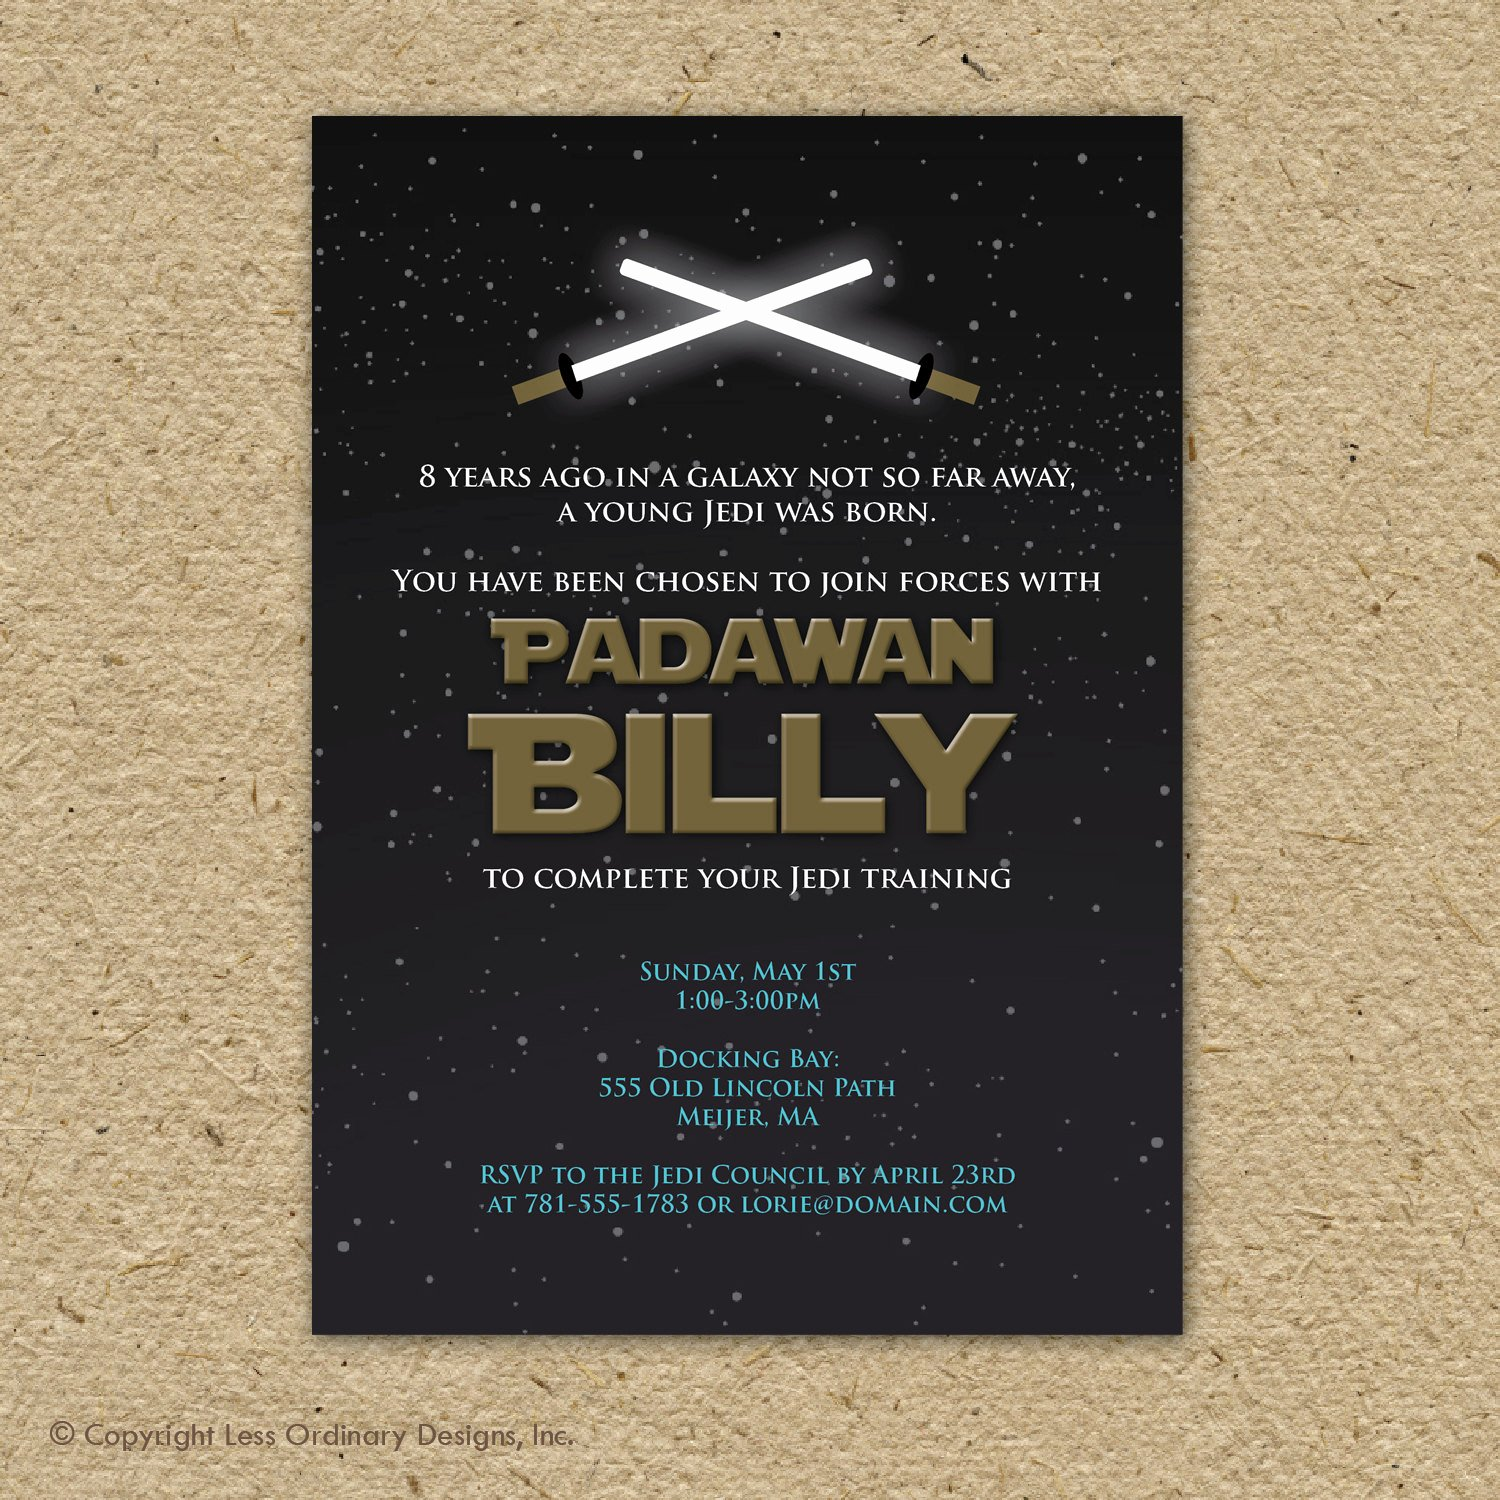 Star Wars Invitations Free Fresh Star Wars Birthday Party Invitation Printable by